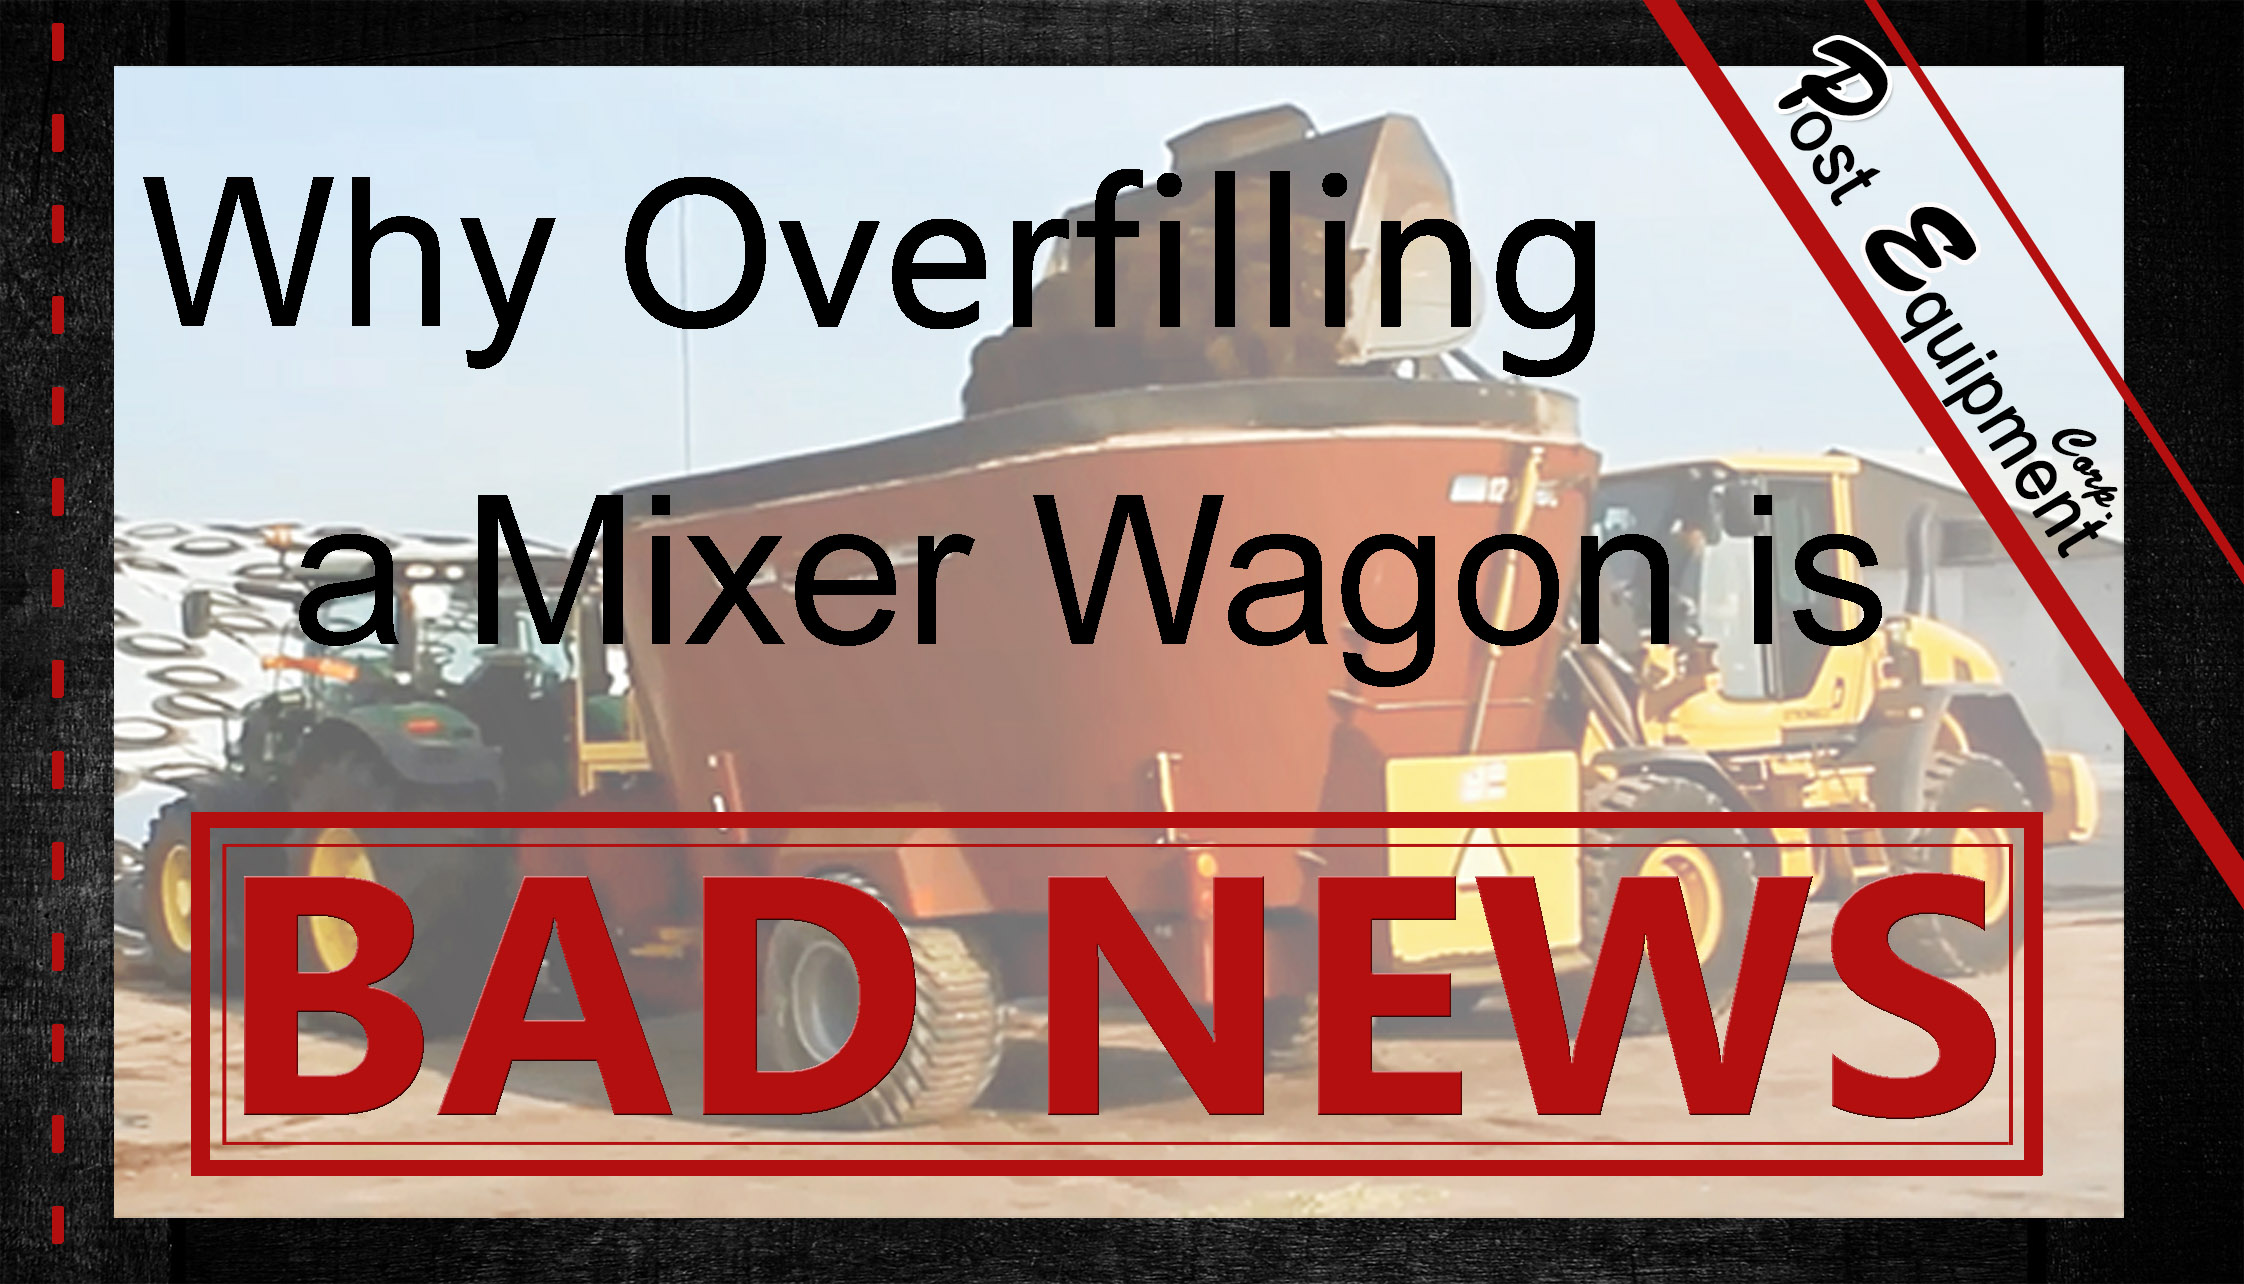 Overfilling Mixer Wagon = BAD NEWS